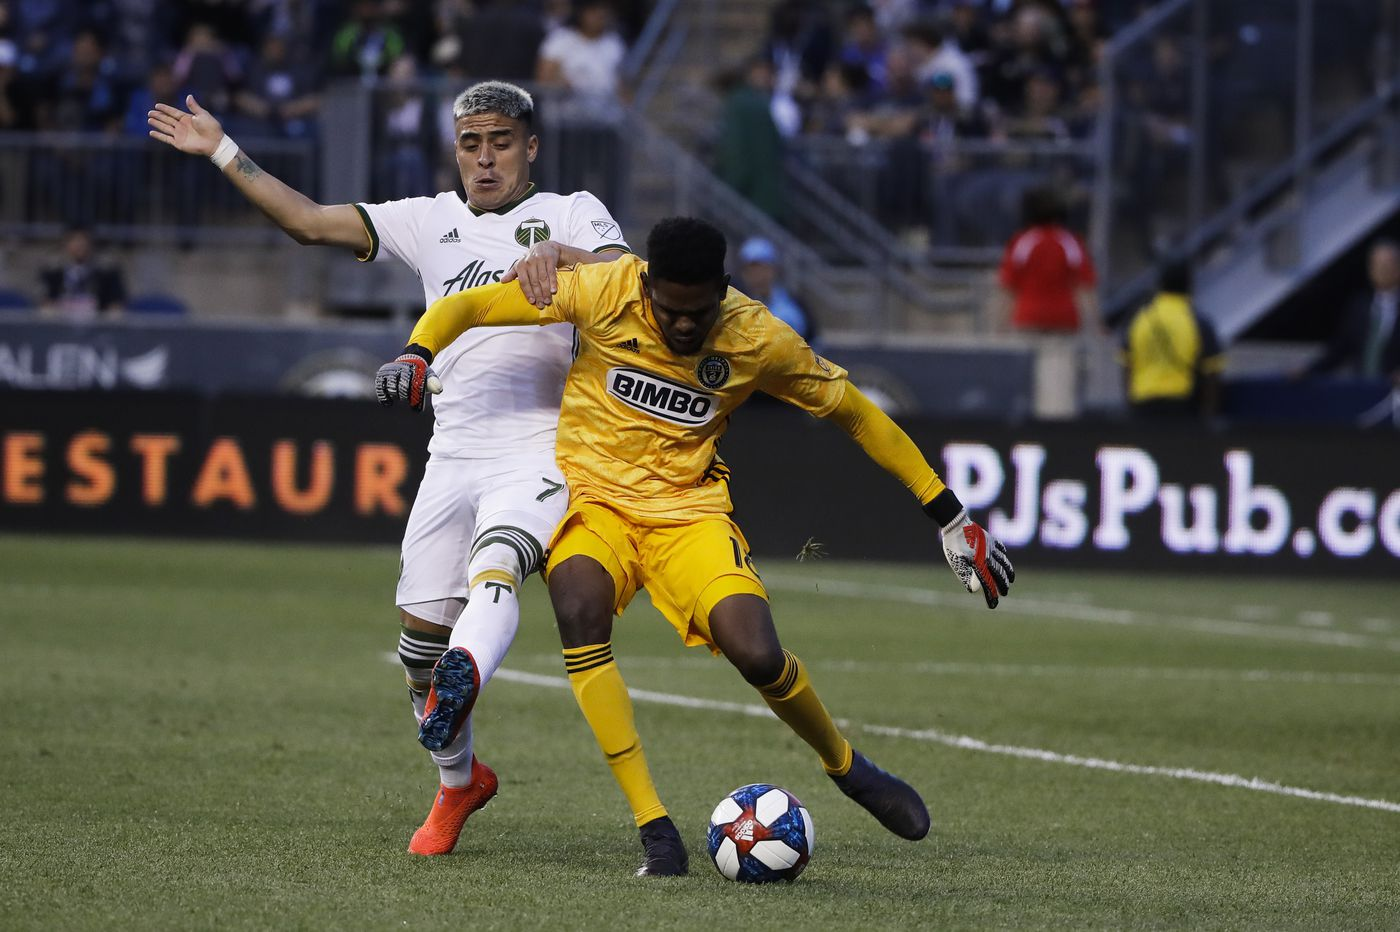 Union lose to Portland Timbers 3-1 as Brian Fernandez scores twice